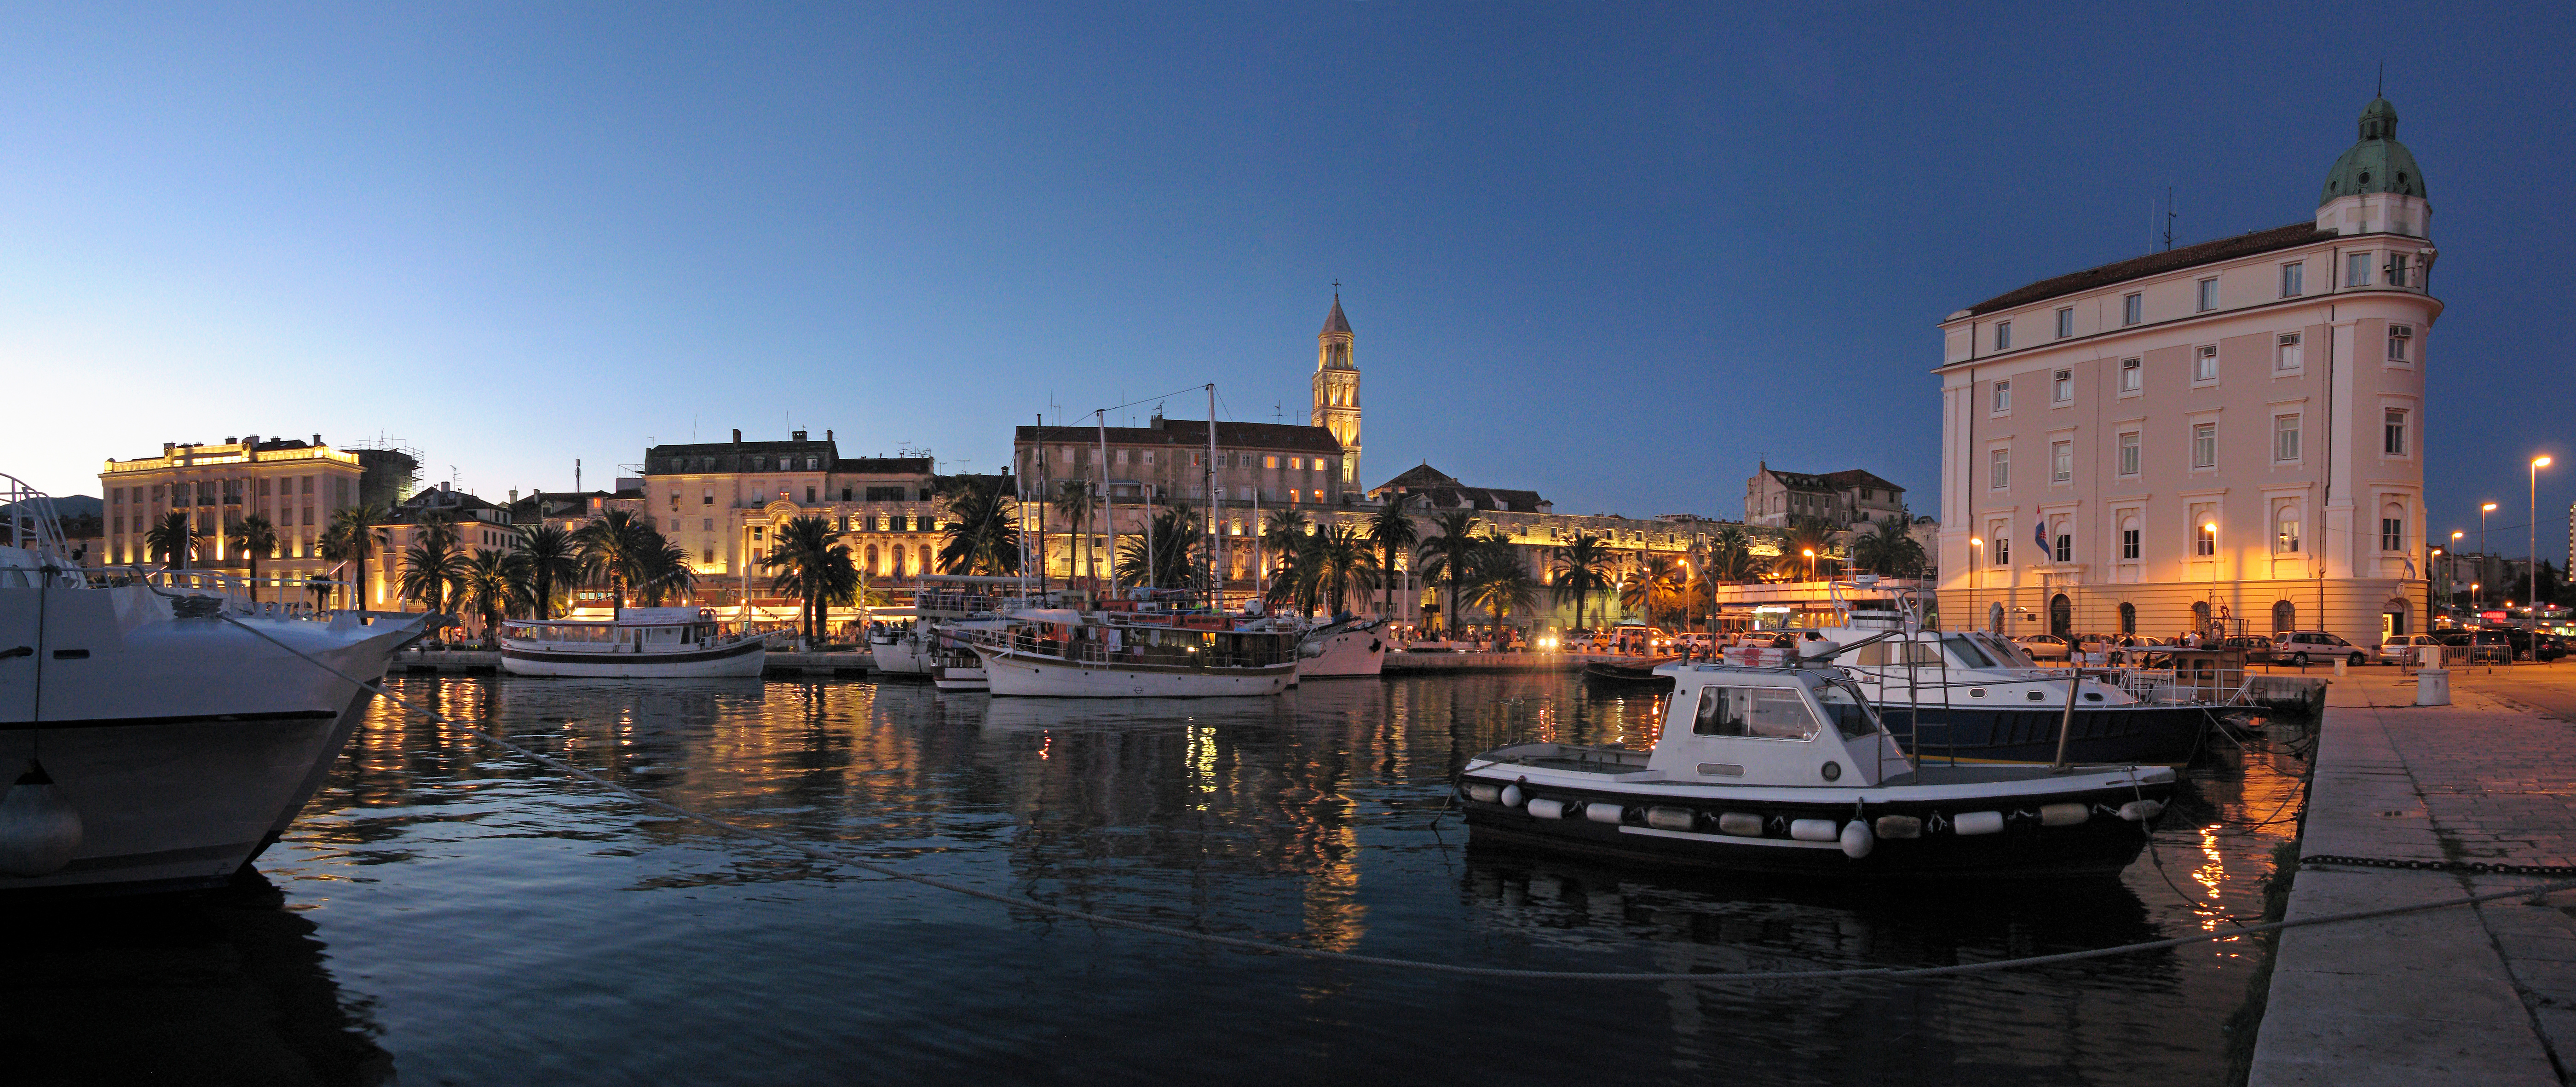 dating in split croatia attractions